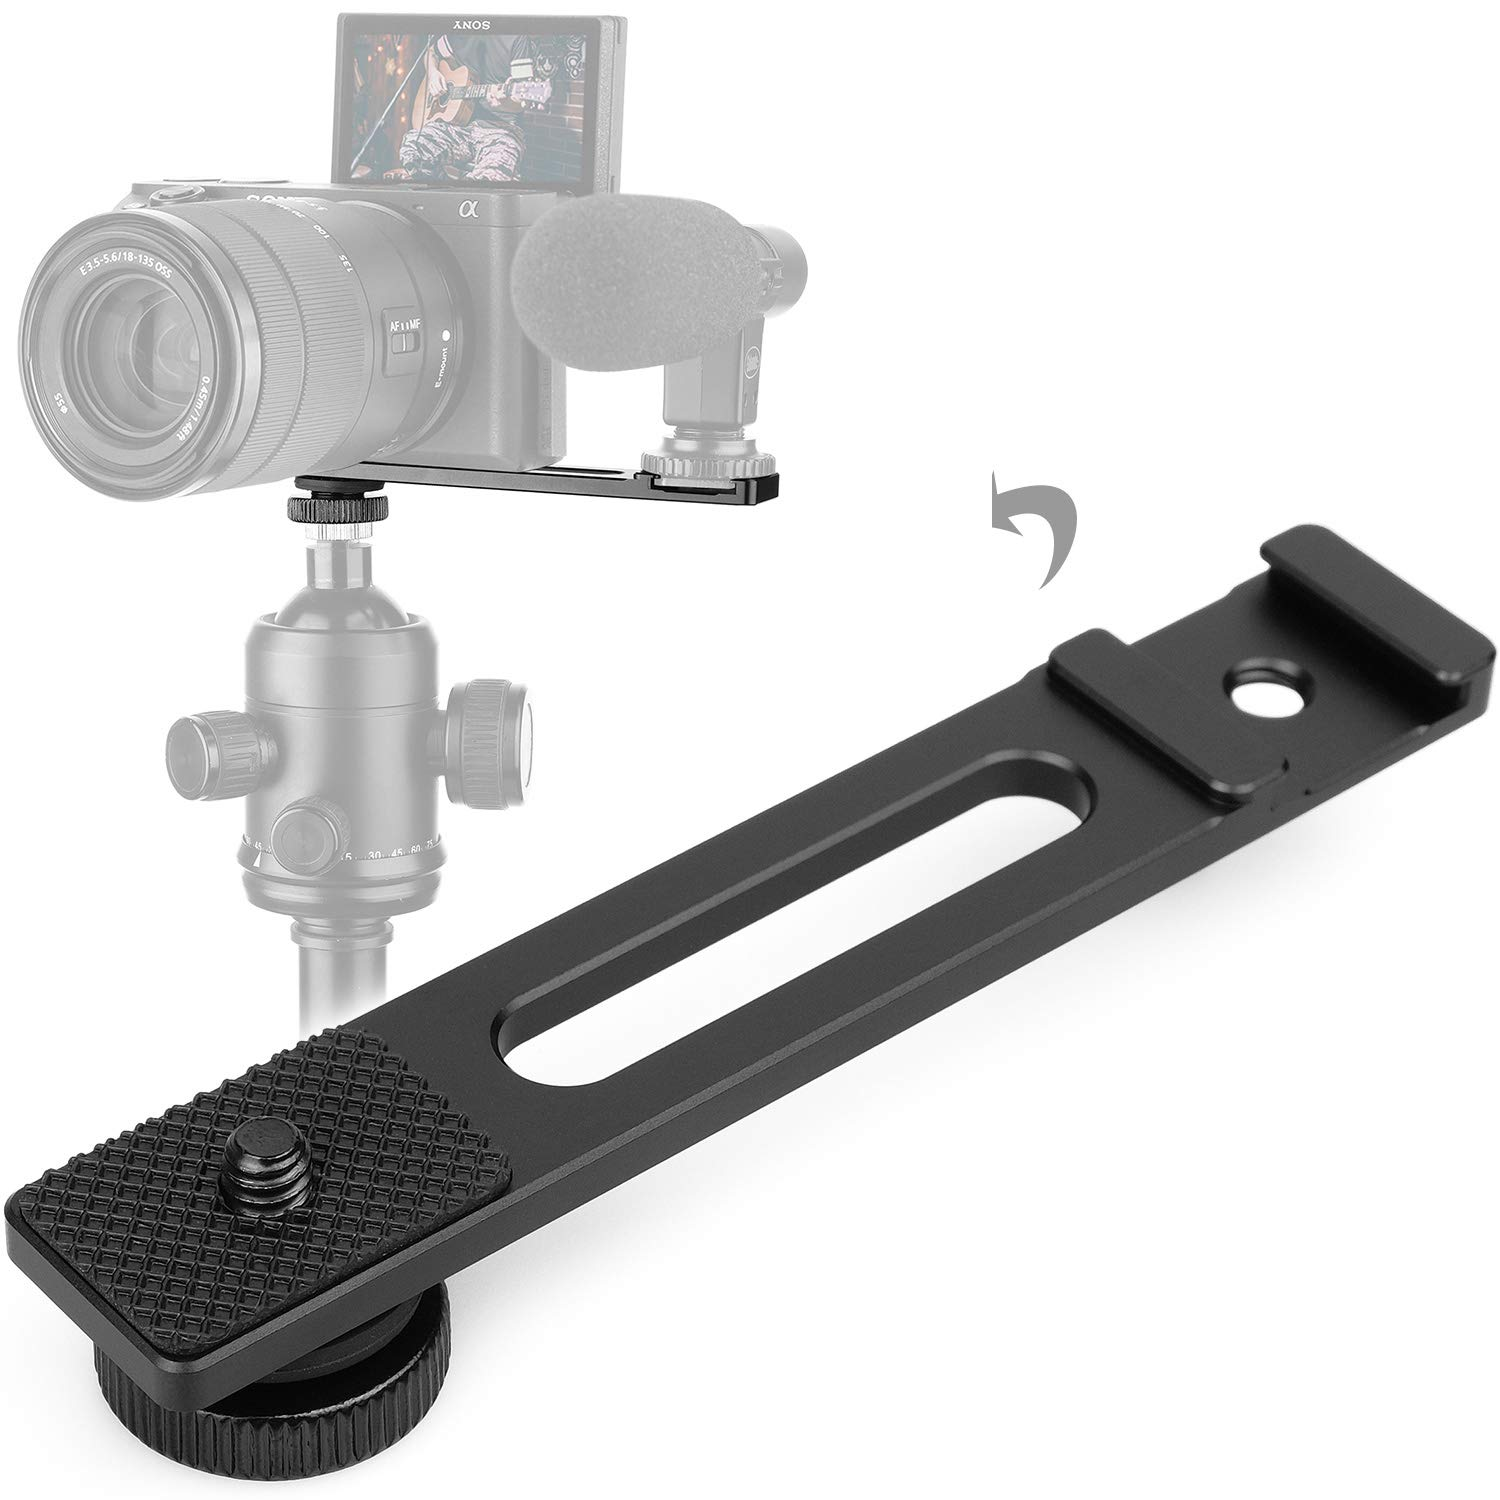 ChromLives Cold Shoe Bracket Extension Bar Hot Shoe Extension Vlog Video Microphone Mount with 1/4'' Tripod Screw for Mirrorless Camera Vlogging Sony A6400 6300 6500 6000 Zhiyun 4 DJI Osmo Pocket